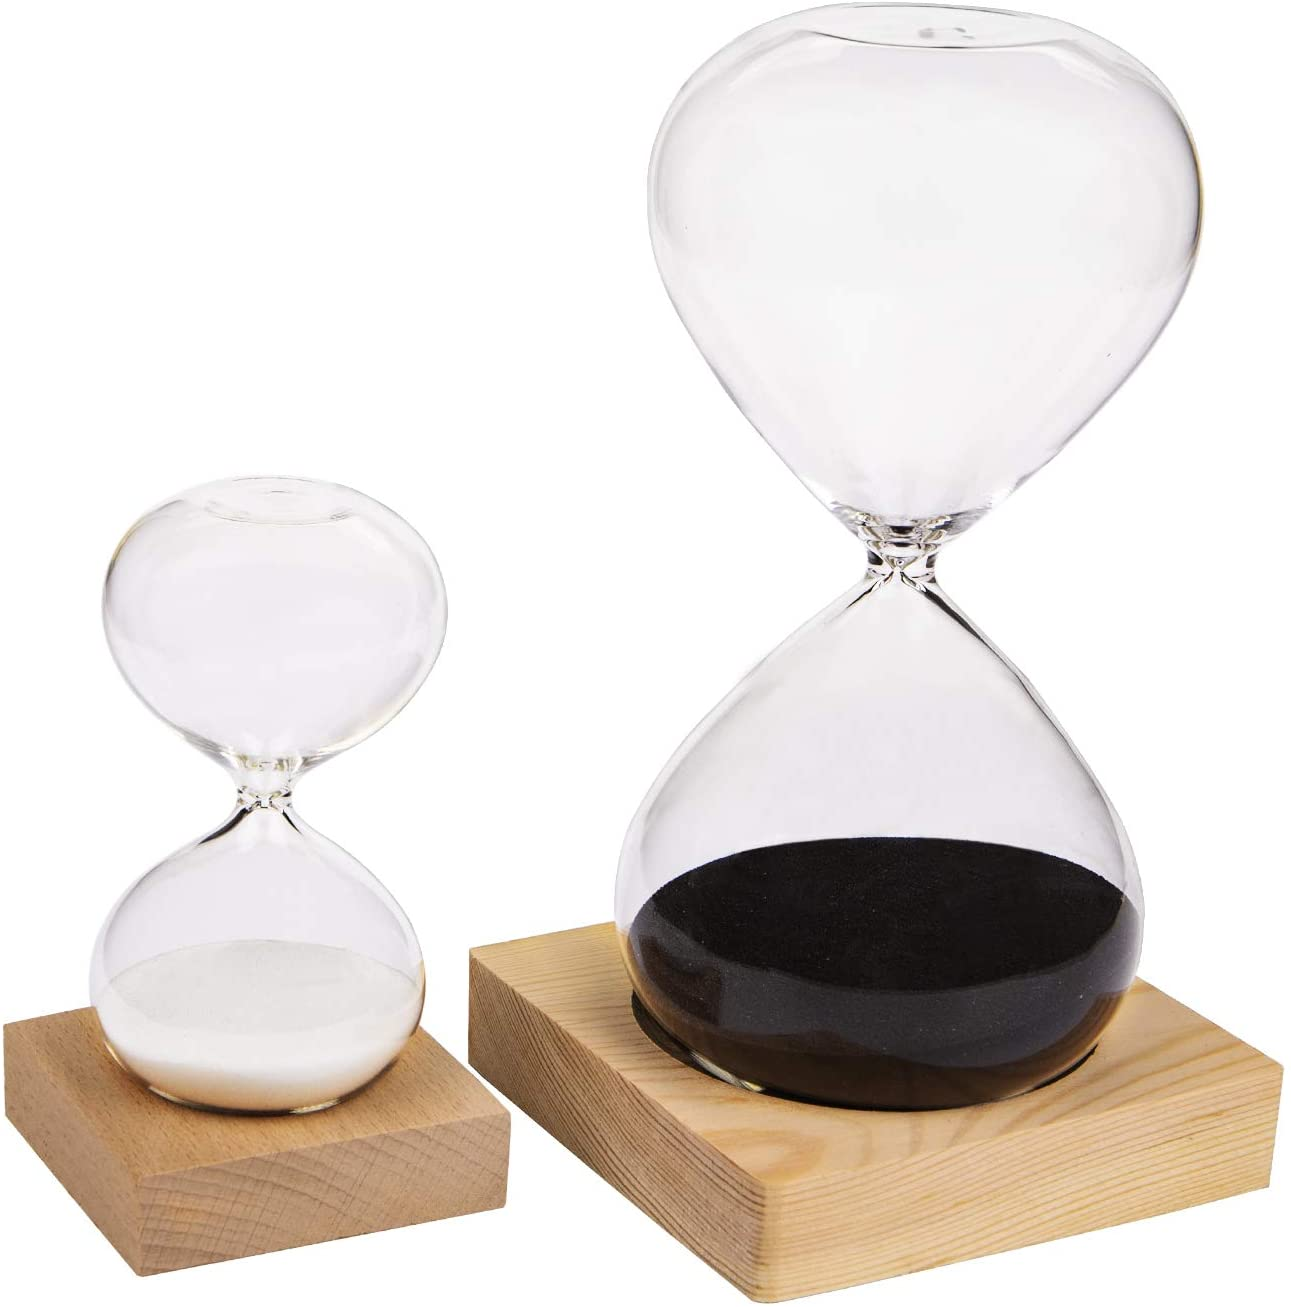 Suwimut 2 Pack Hourglass Sand Timer, 30 Minute and 5 Minute Sand Clock Timers for Office, Home, Desk Decor, Time Management Tool with Wooden Base Stand (Black and White)